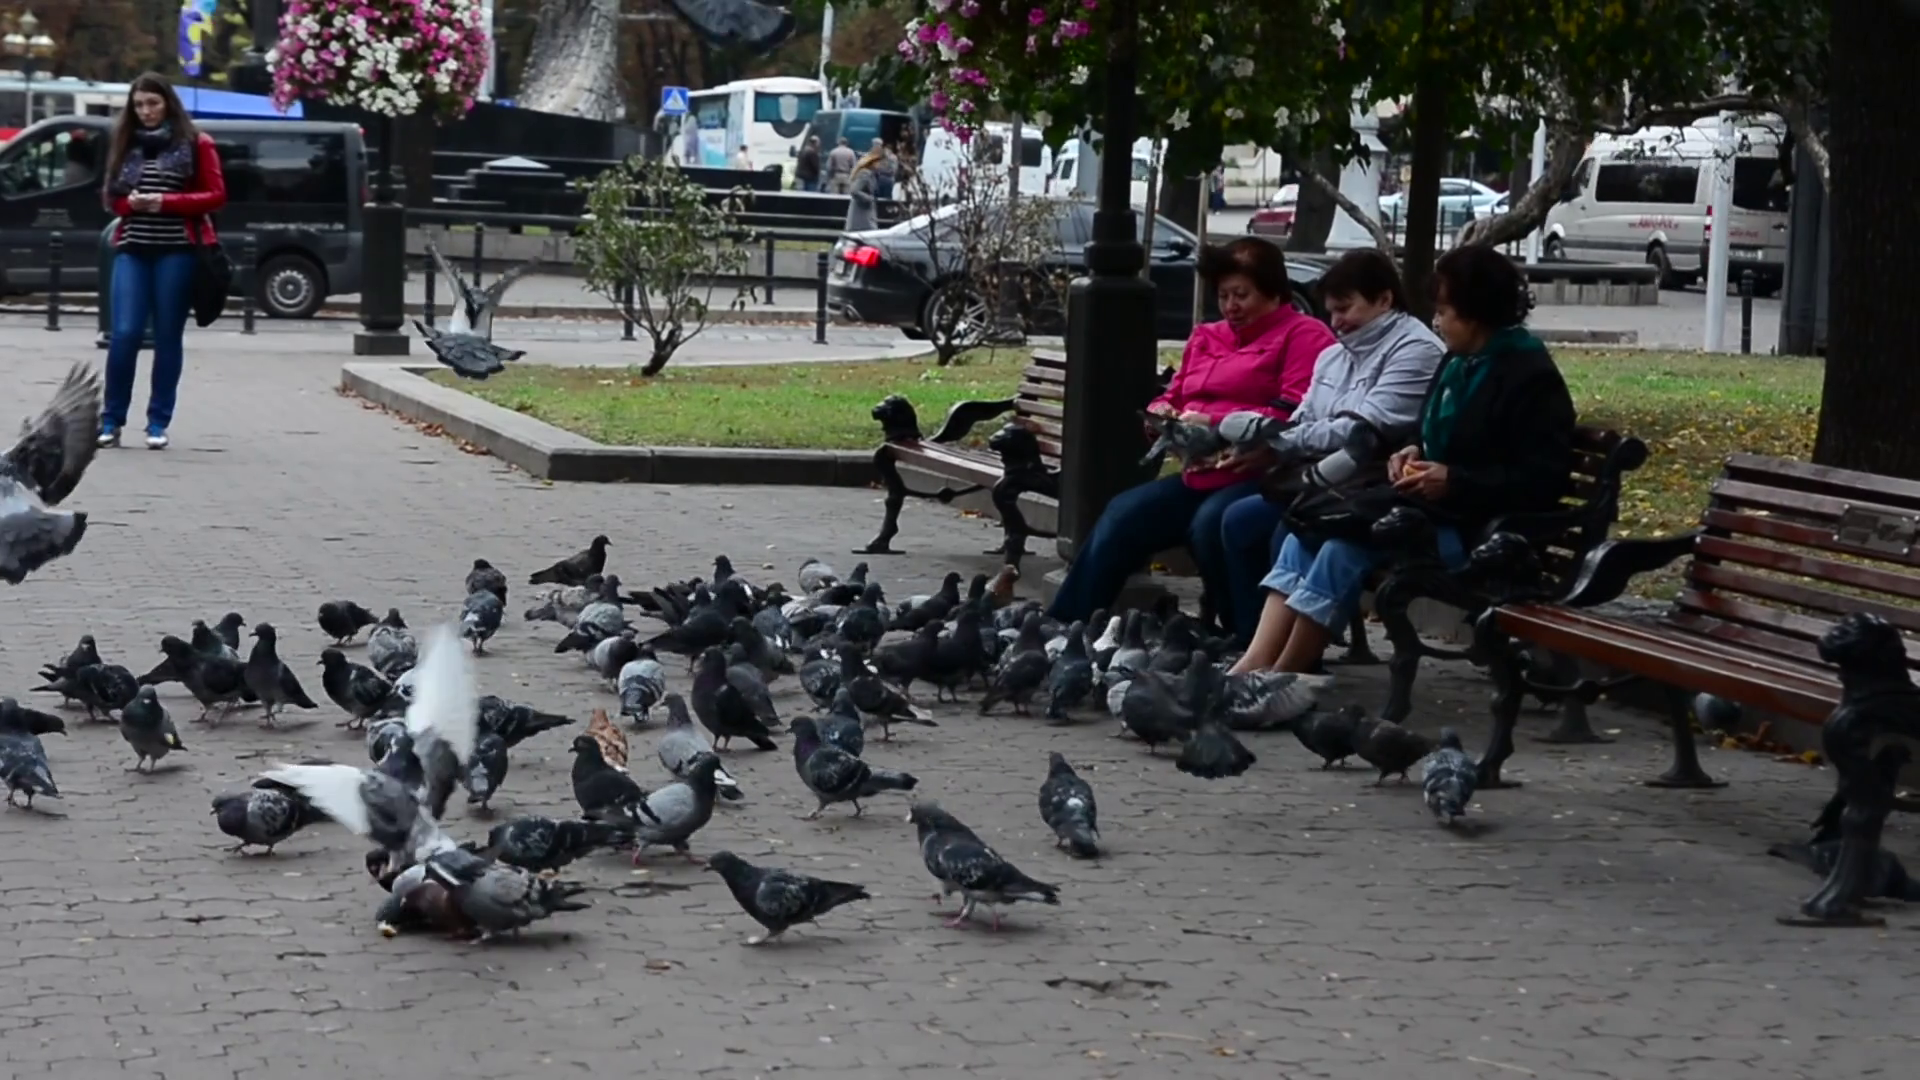 Feeding the pigeons photo